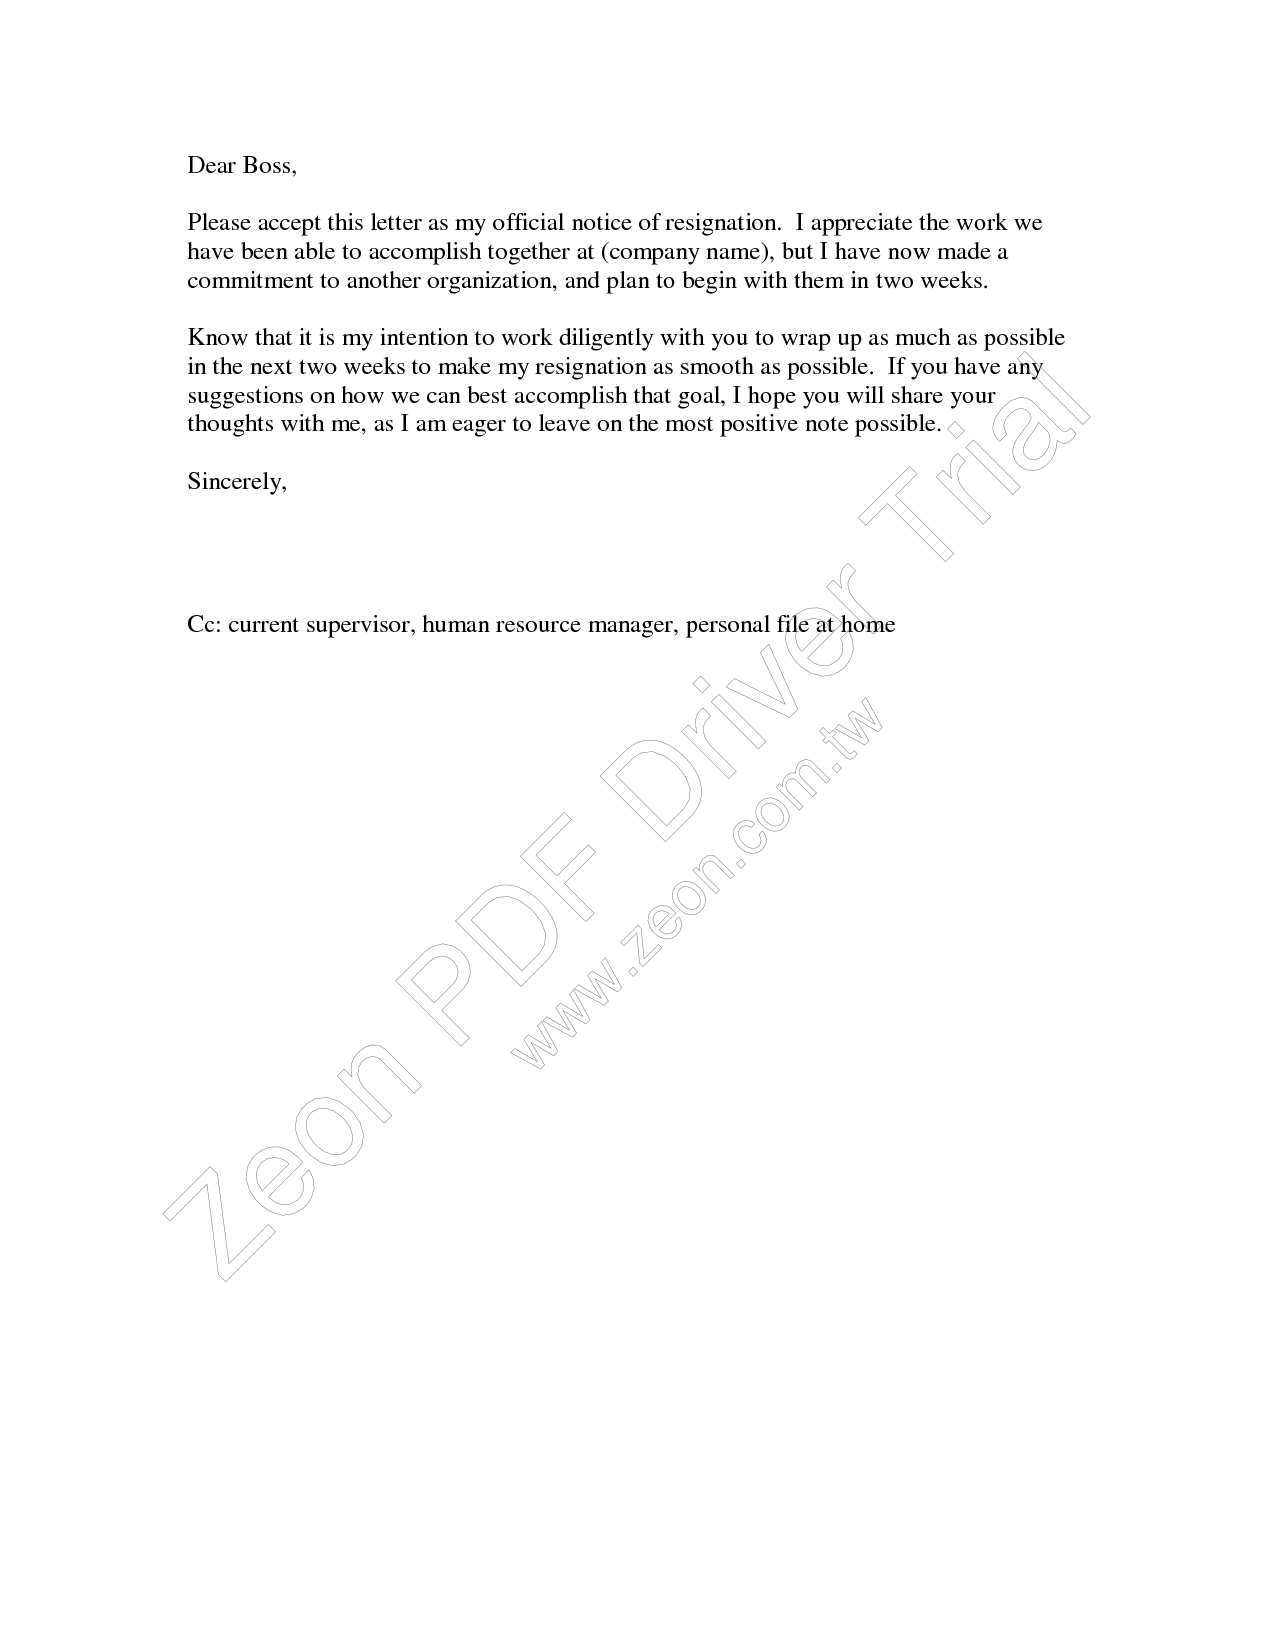 resignation letter 2 week notice formal two week notice resignation letter example 1568